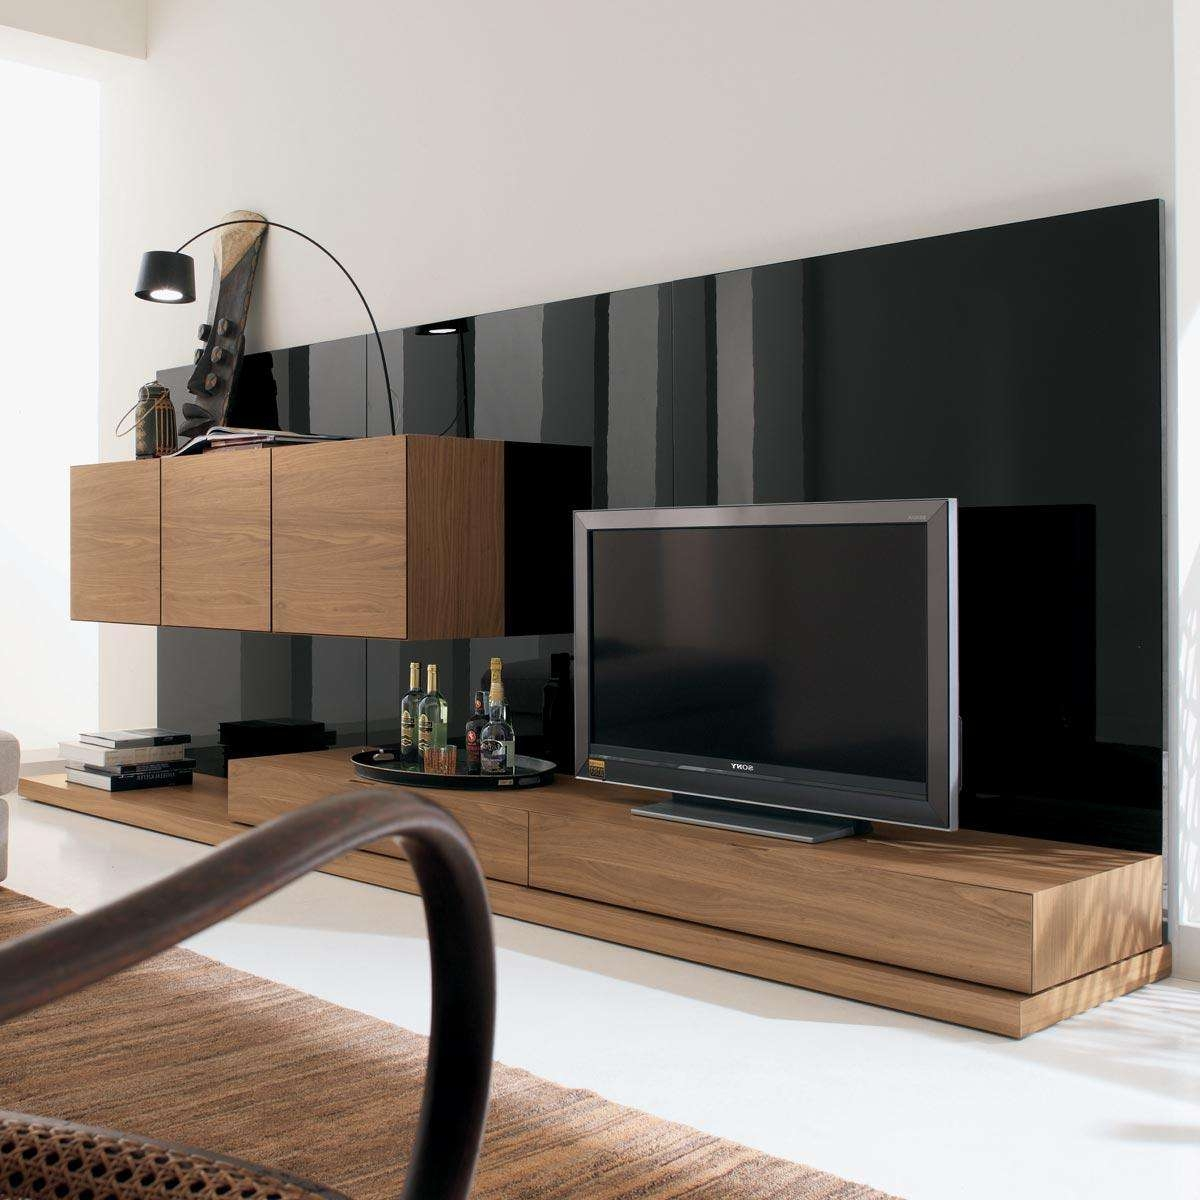 Modern Nature Wood Big Screen Tv Stand Wall Mounted Living Room Inside Solid Wood Black Tv Stands (View 9 of 15)